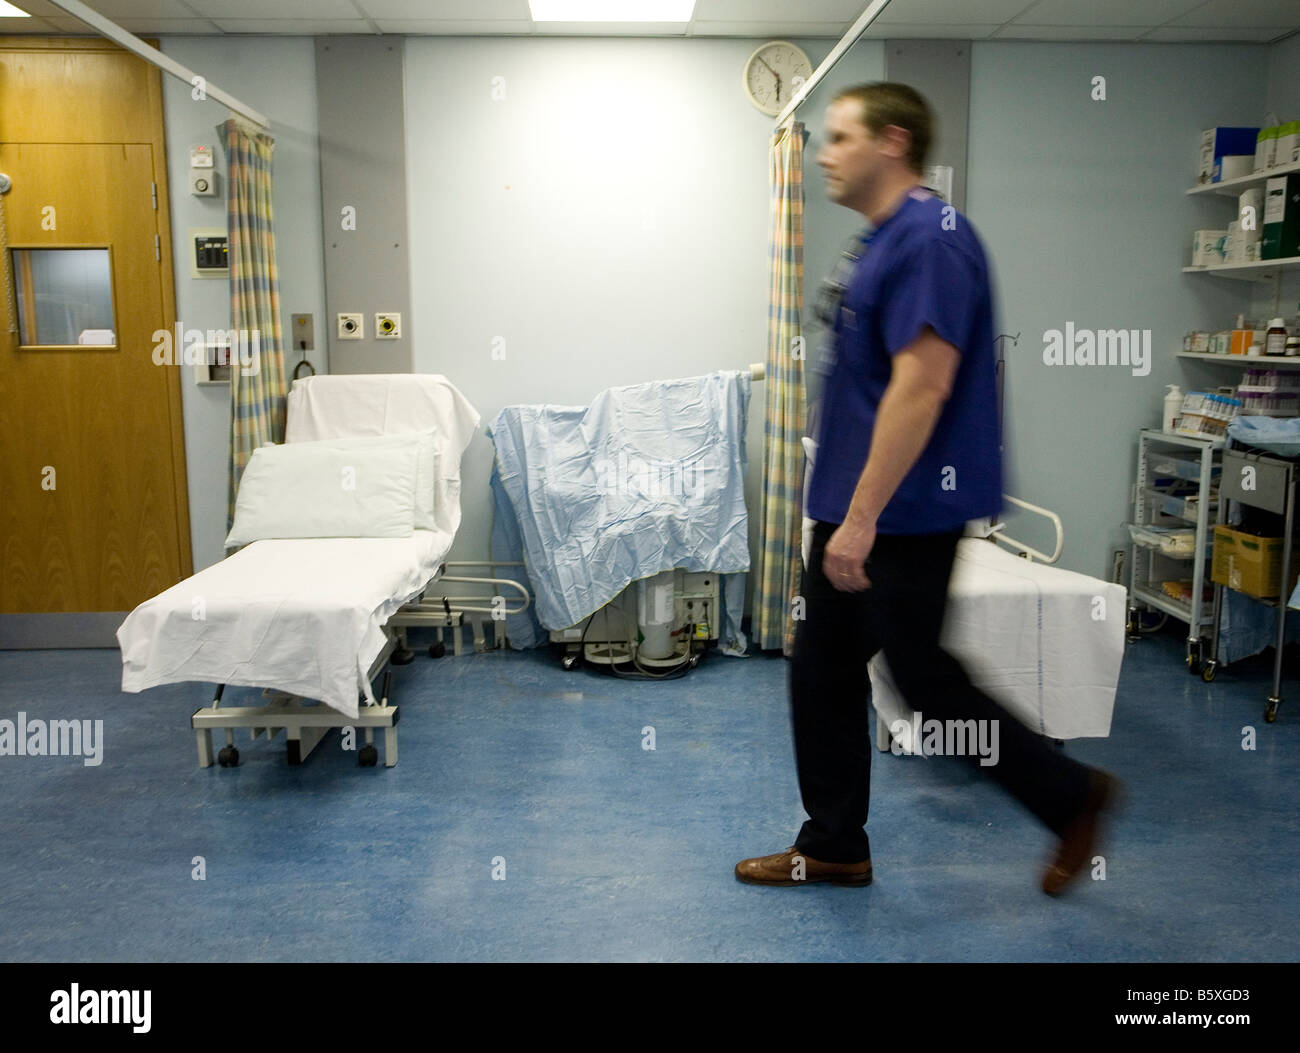 A doctor walks past empty beds at an NHS hospital in UK - Stock Image